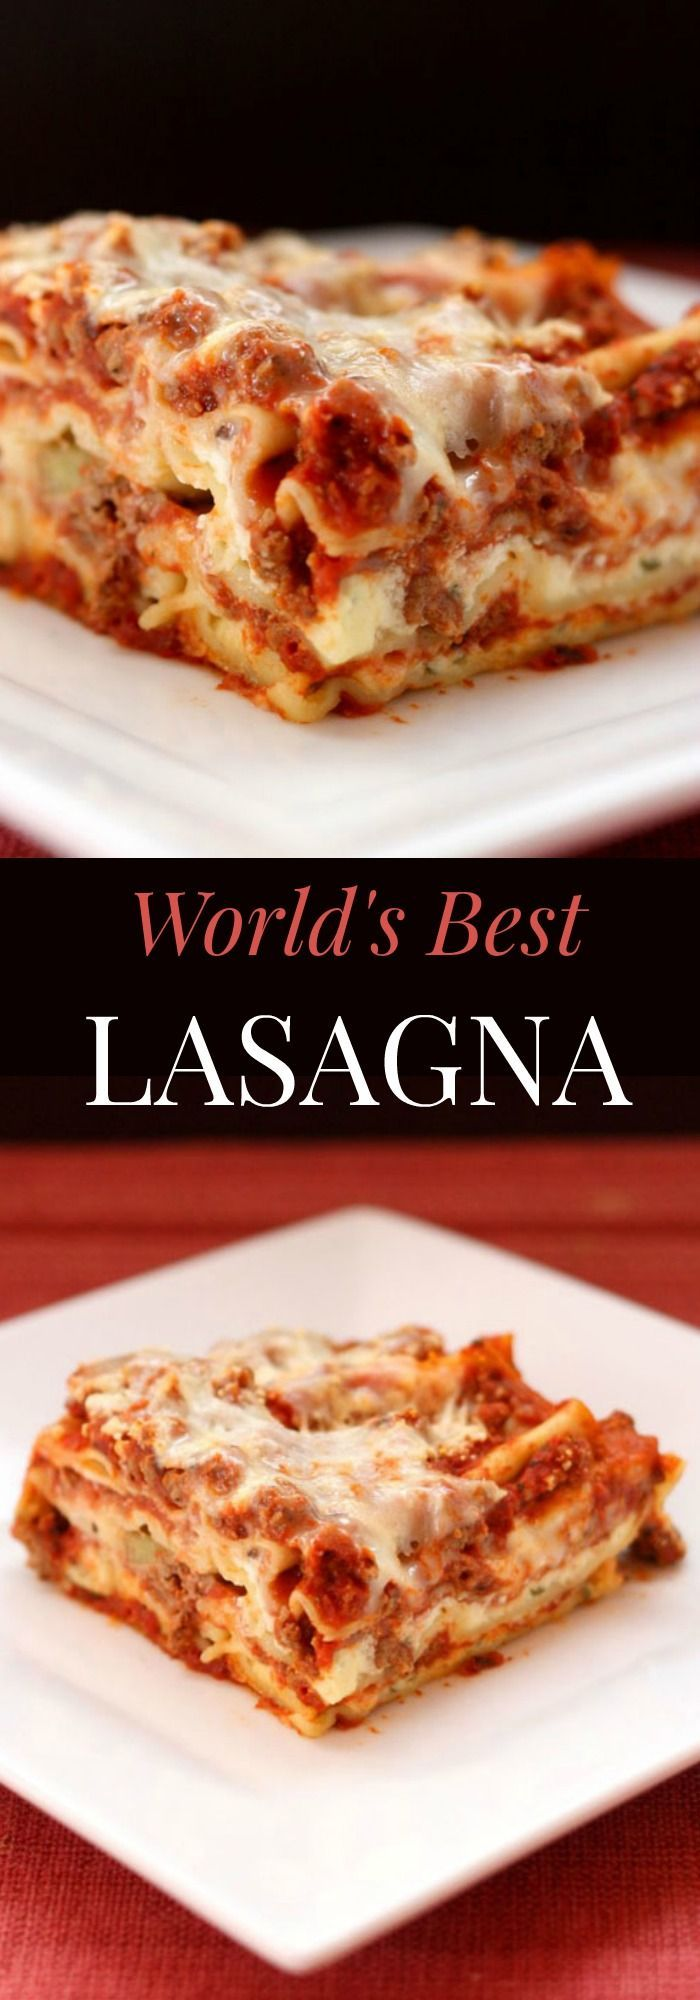 World's Best Lasagna - the quintessential recipe for this Italian comfort food classic | http://cupcakesandkalechips.com